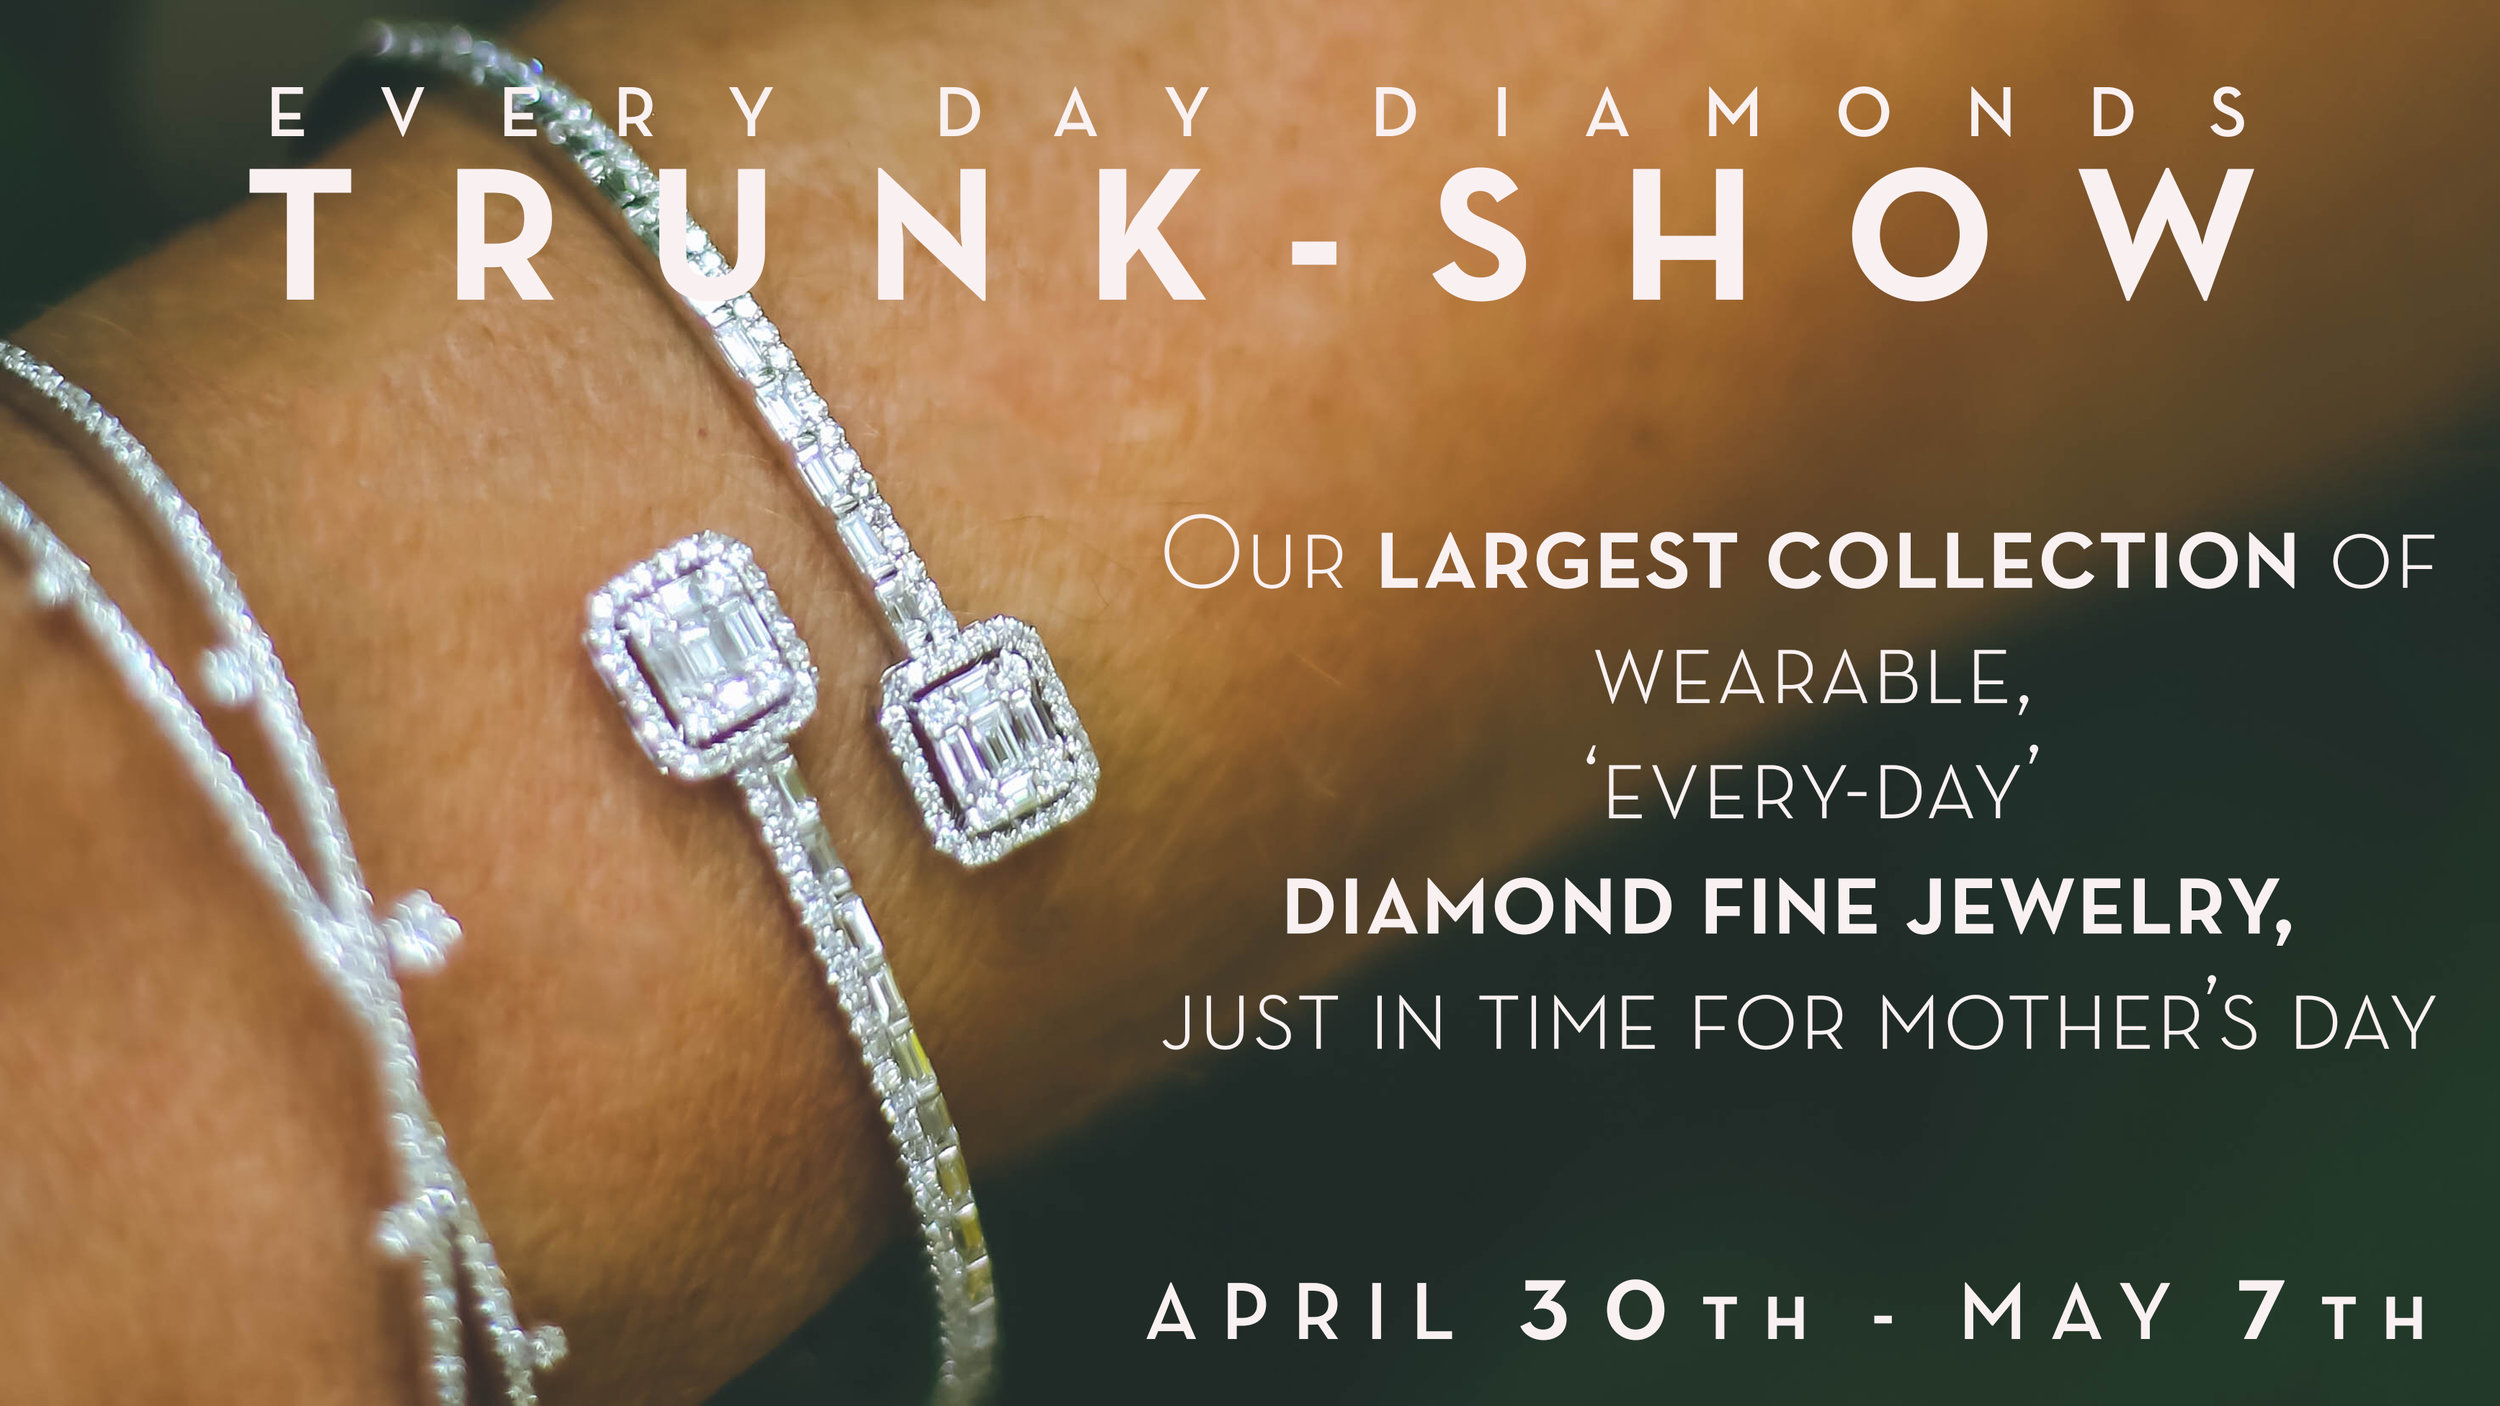 Every Day Diamonds Trunk Show Fine Jewelry.jpg